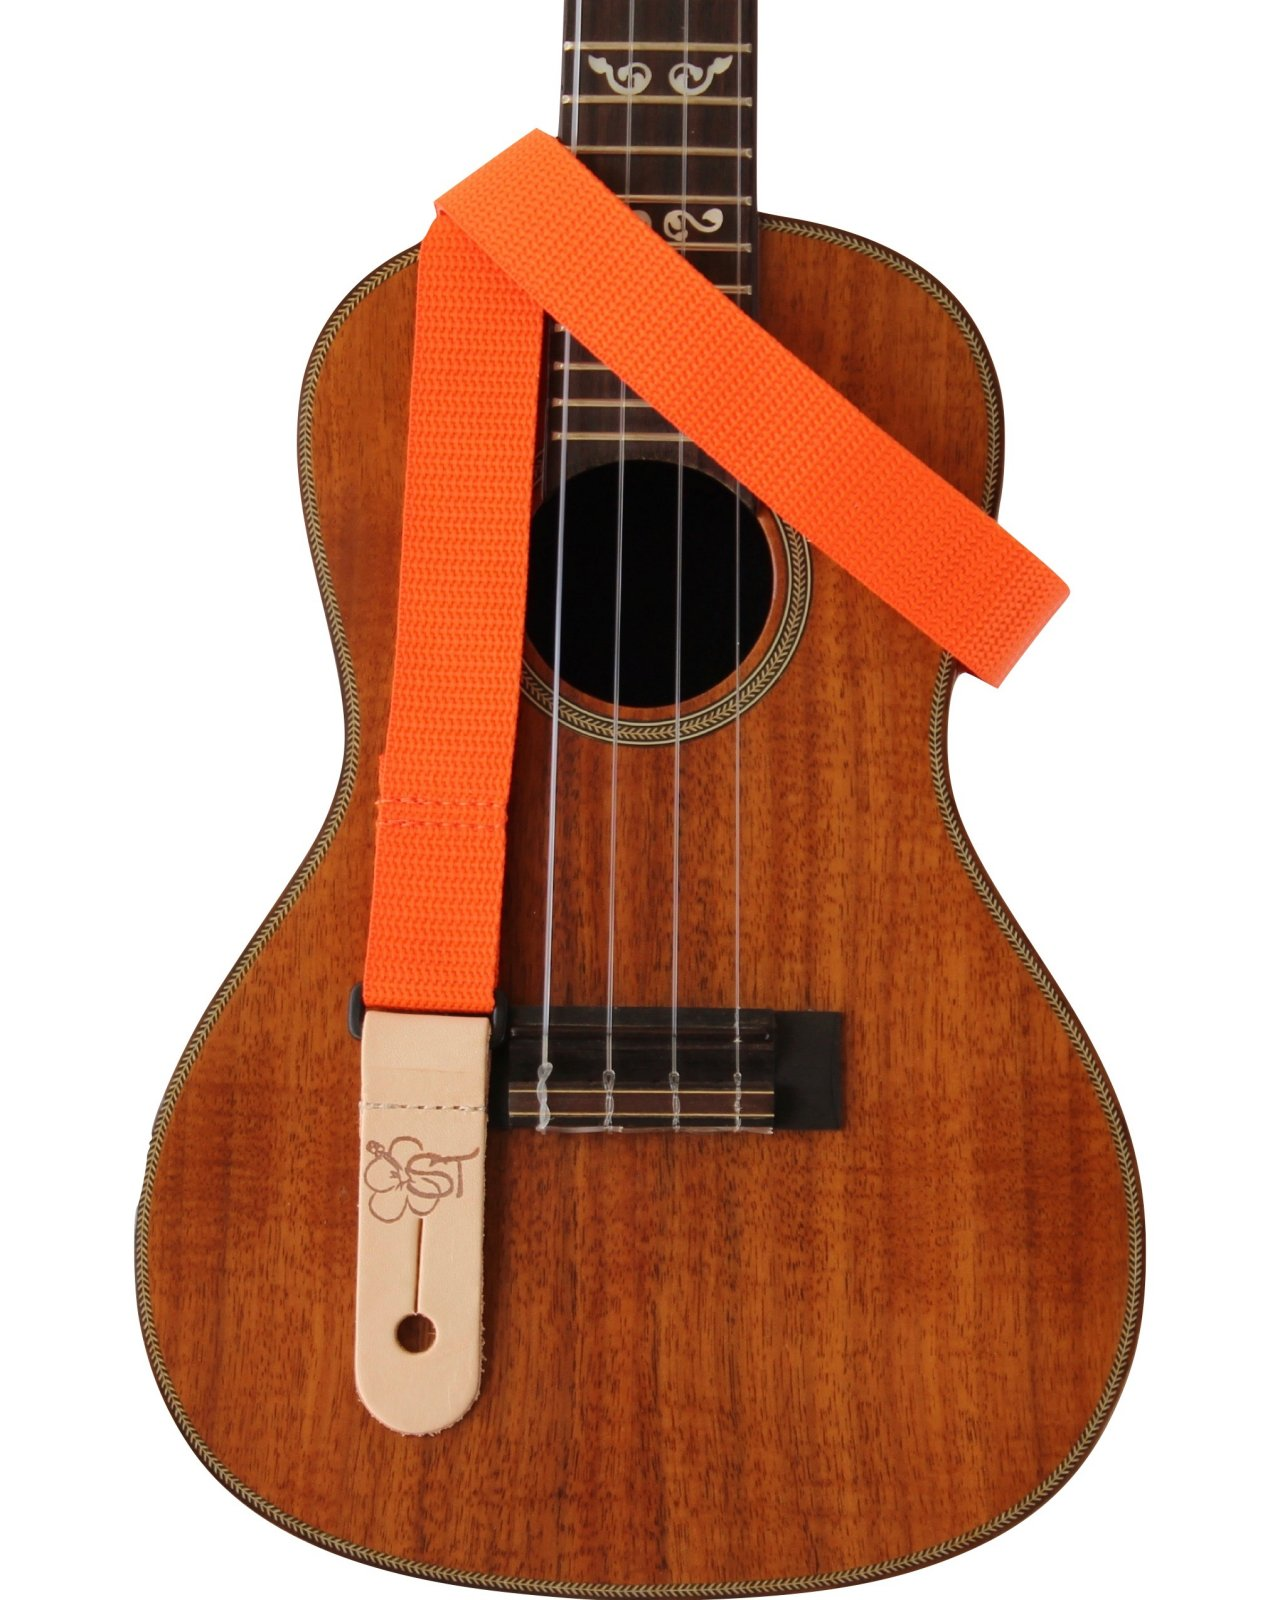 ST 1 Orange Ukulele Strap